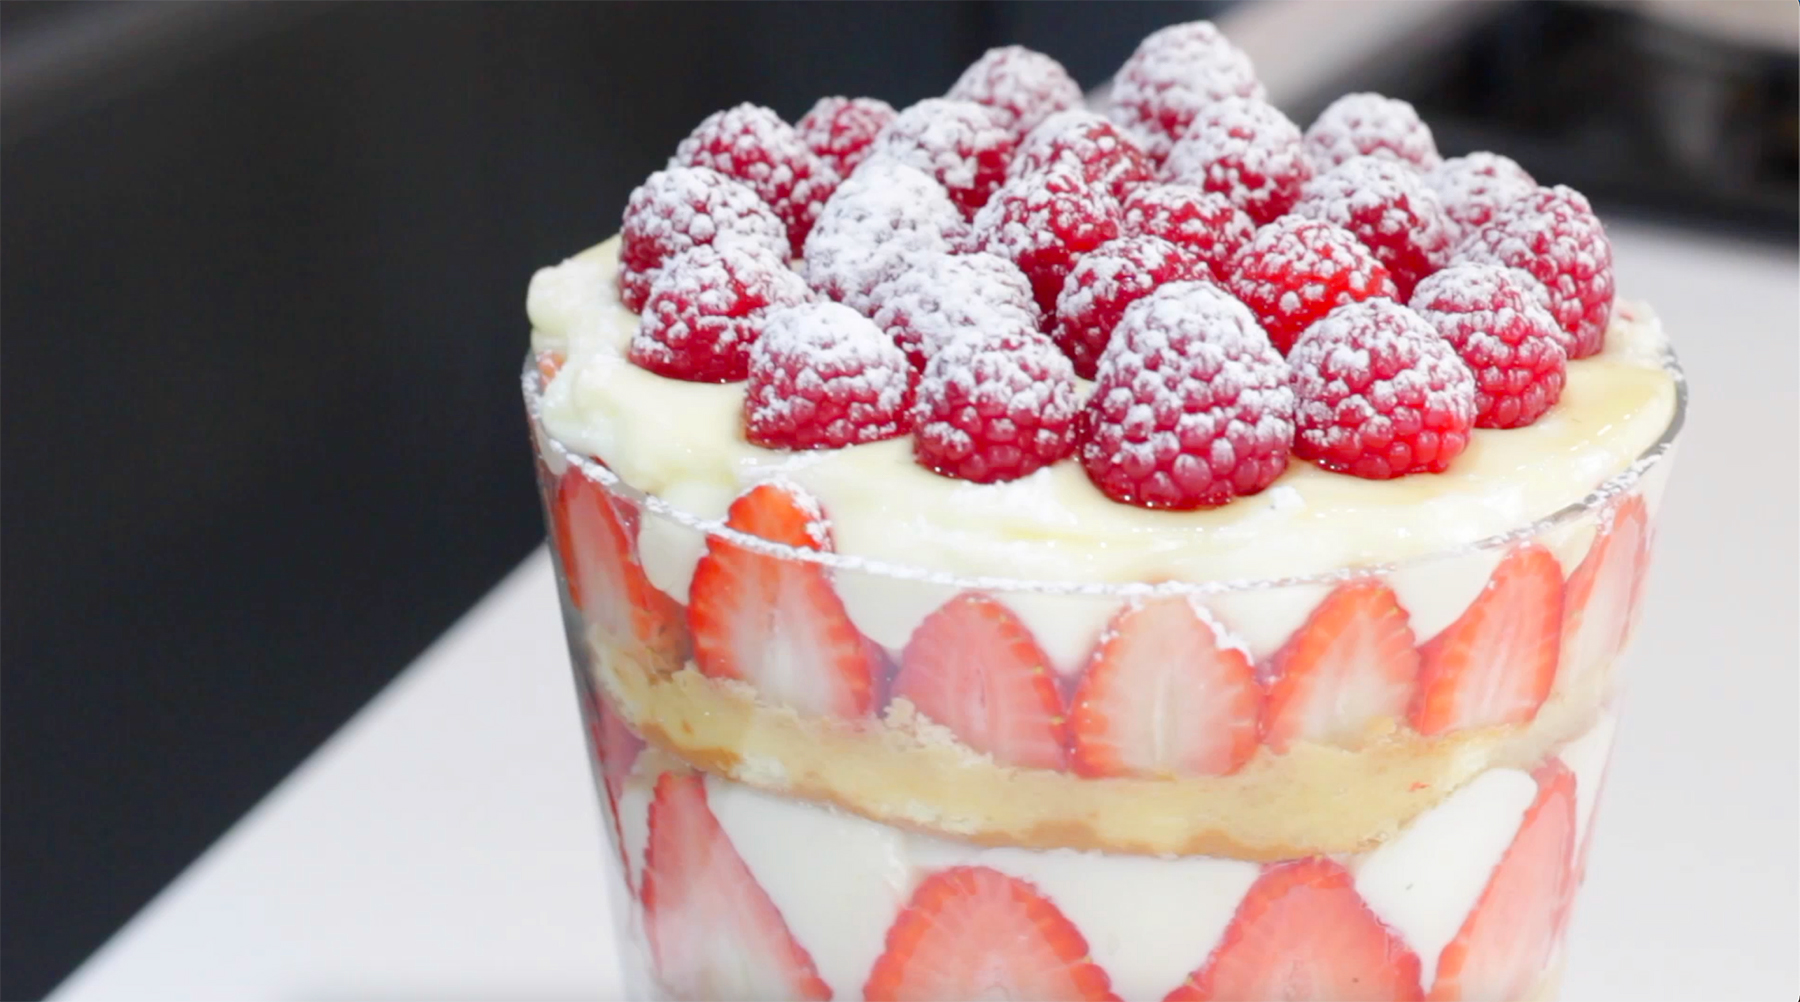 Triffle fresas y chocolate blanco